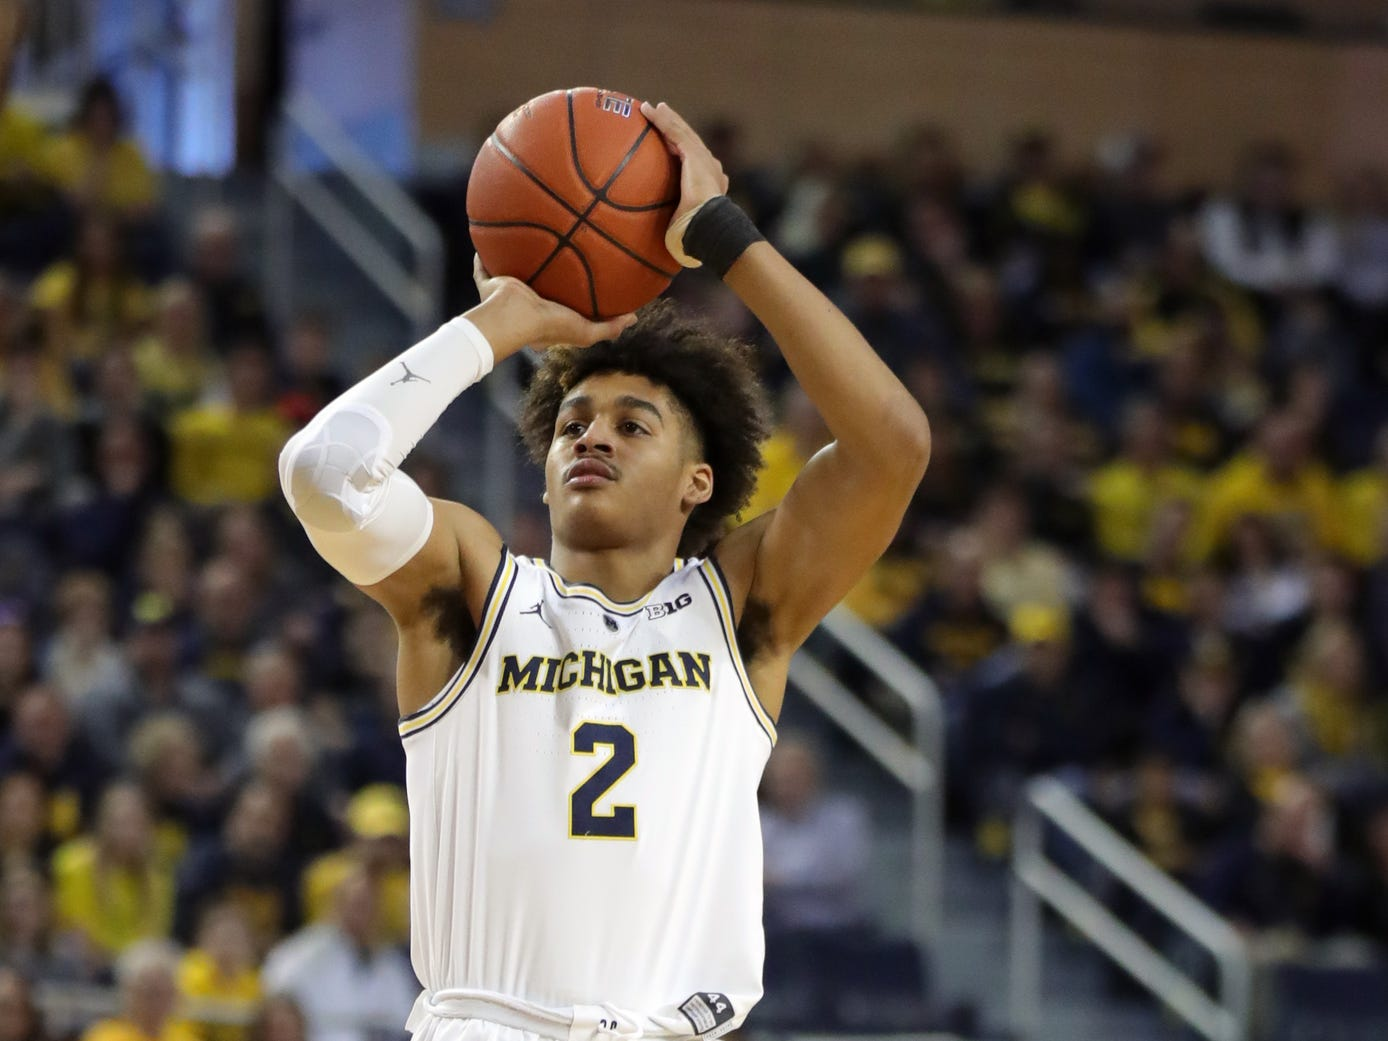 Michigan guard Jordan Poole shoots a three pointer against Wisconsin during the first half Saturday, Feb. 9, 2019 at the Crisler Center.